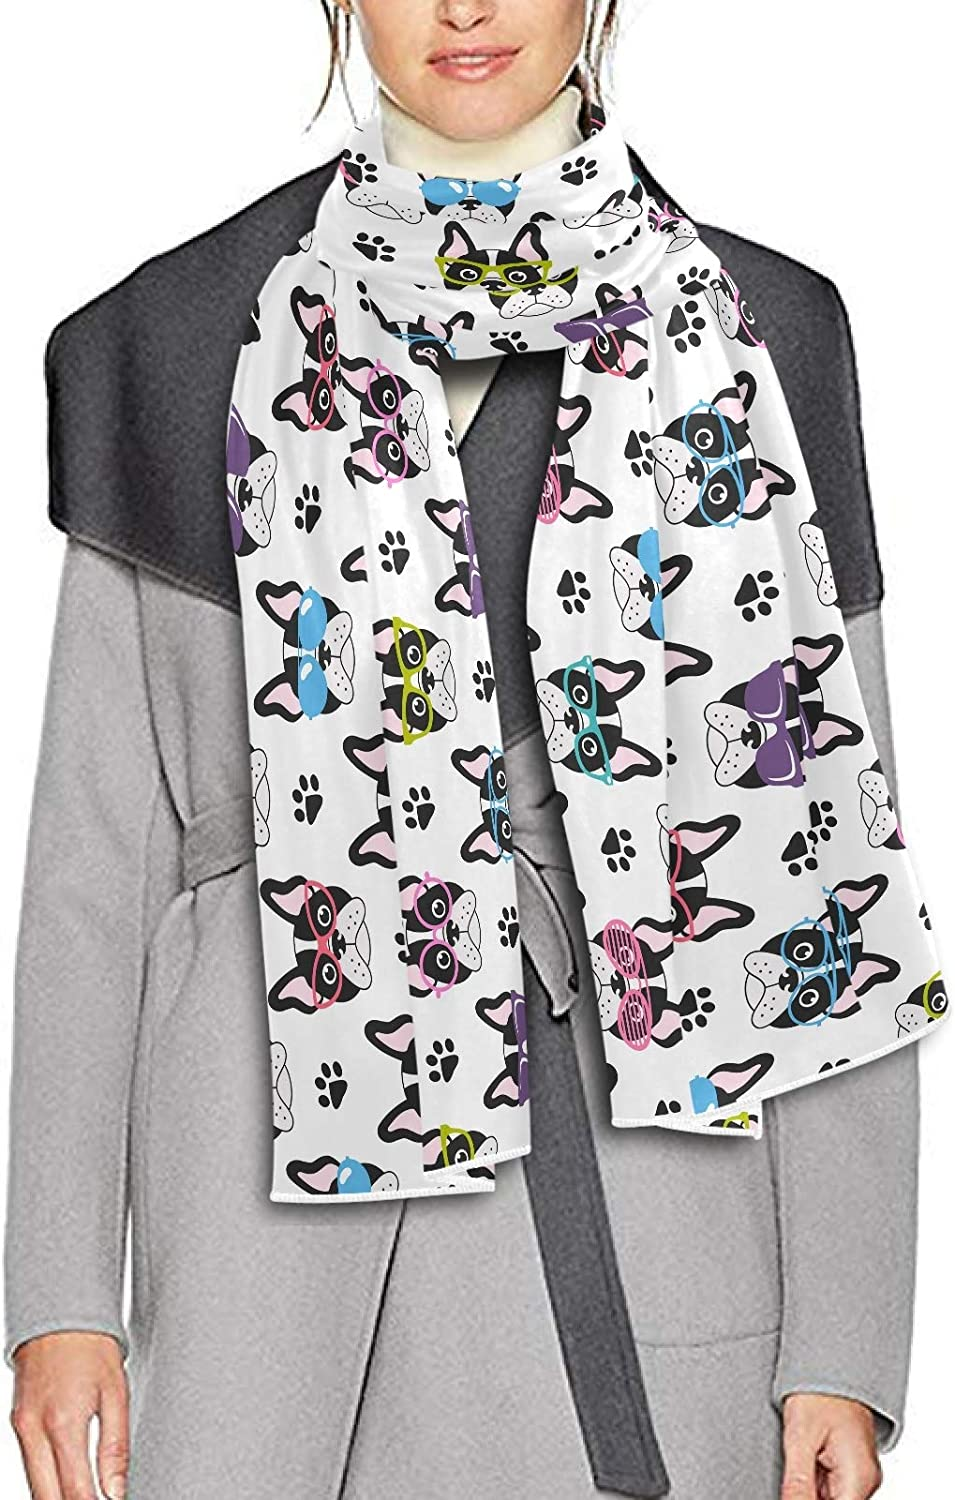 Scarf for Women and Men Cute French Bulldogs Glasses Shawl Wraps Blanket Scarf Thick Soft Winter Large Scarves Lightweight